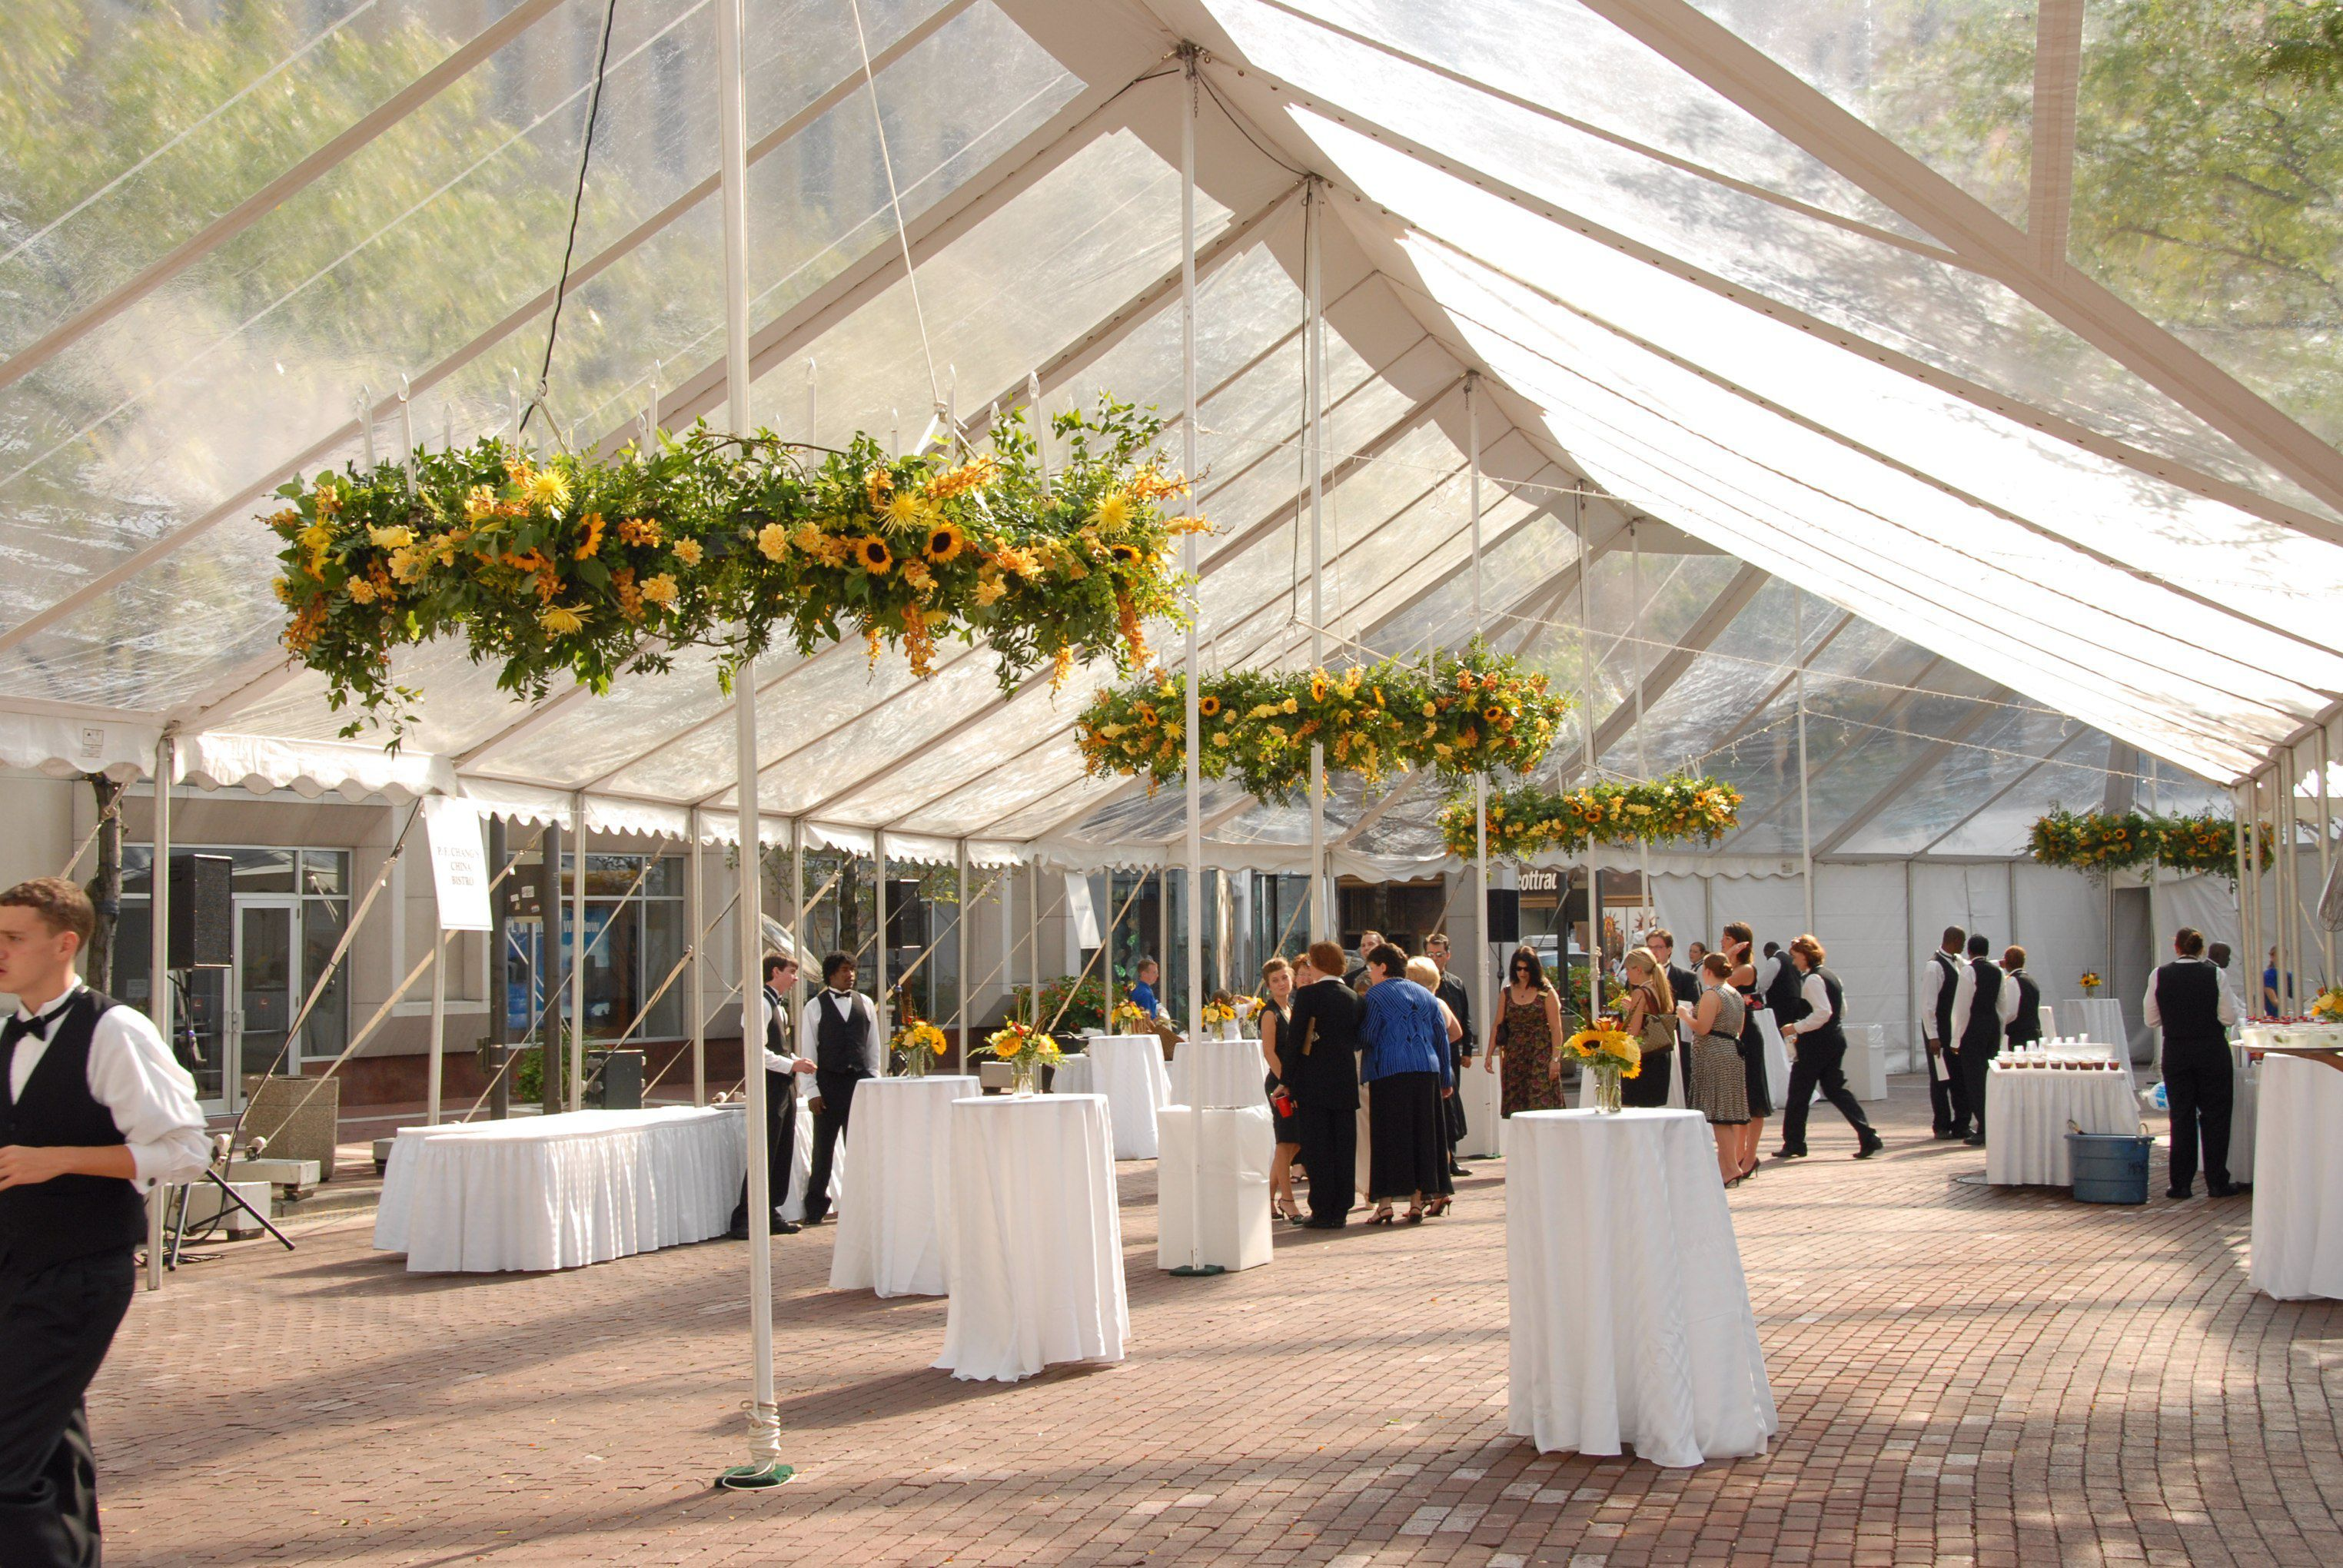 Modern Outdoor Wedding Tent Reception Keywords Weddings Jevelweddingplanning Follow Us